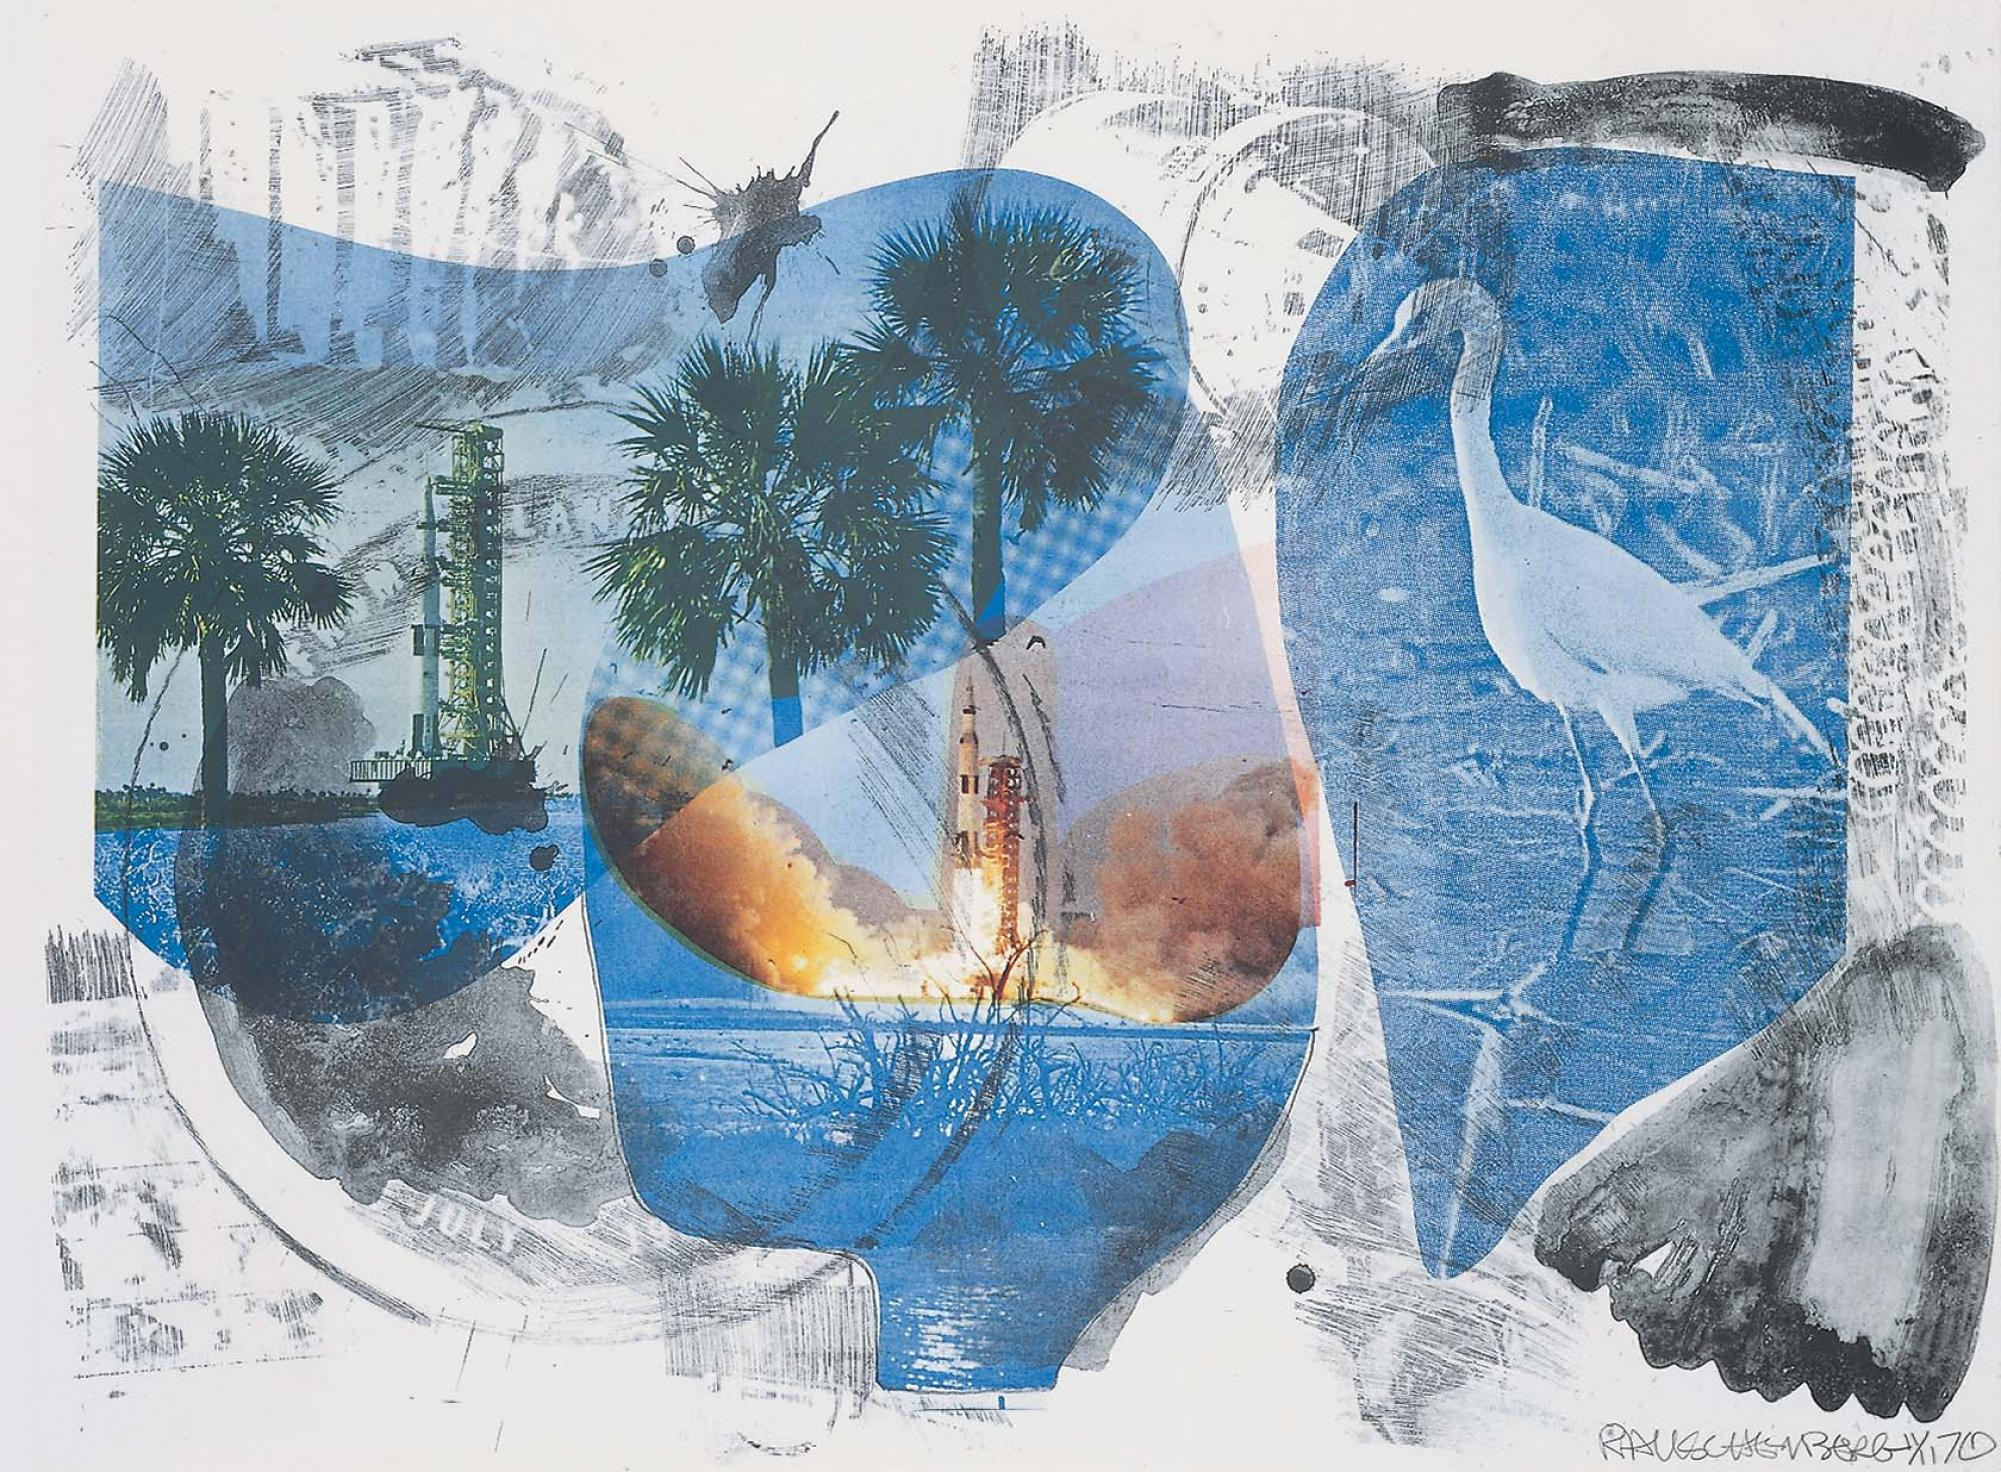 <p><em>Local Means (Stoned Moon)</em>, 1970. Lithograph, 32 3/8 x 43 5/16 inches. © Robert Rauschenberg Foundation and Gemini G.E.L.</p>